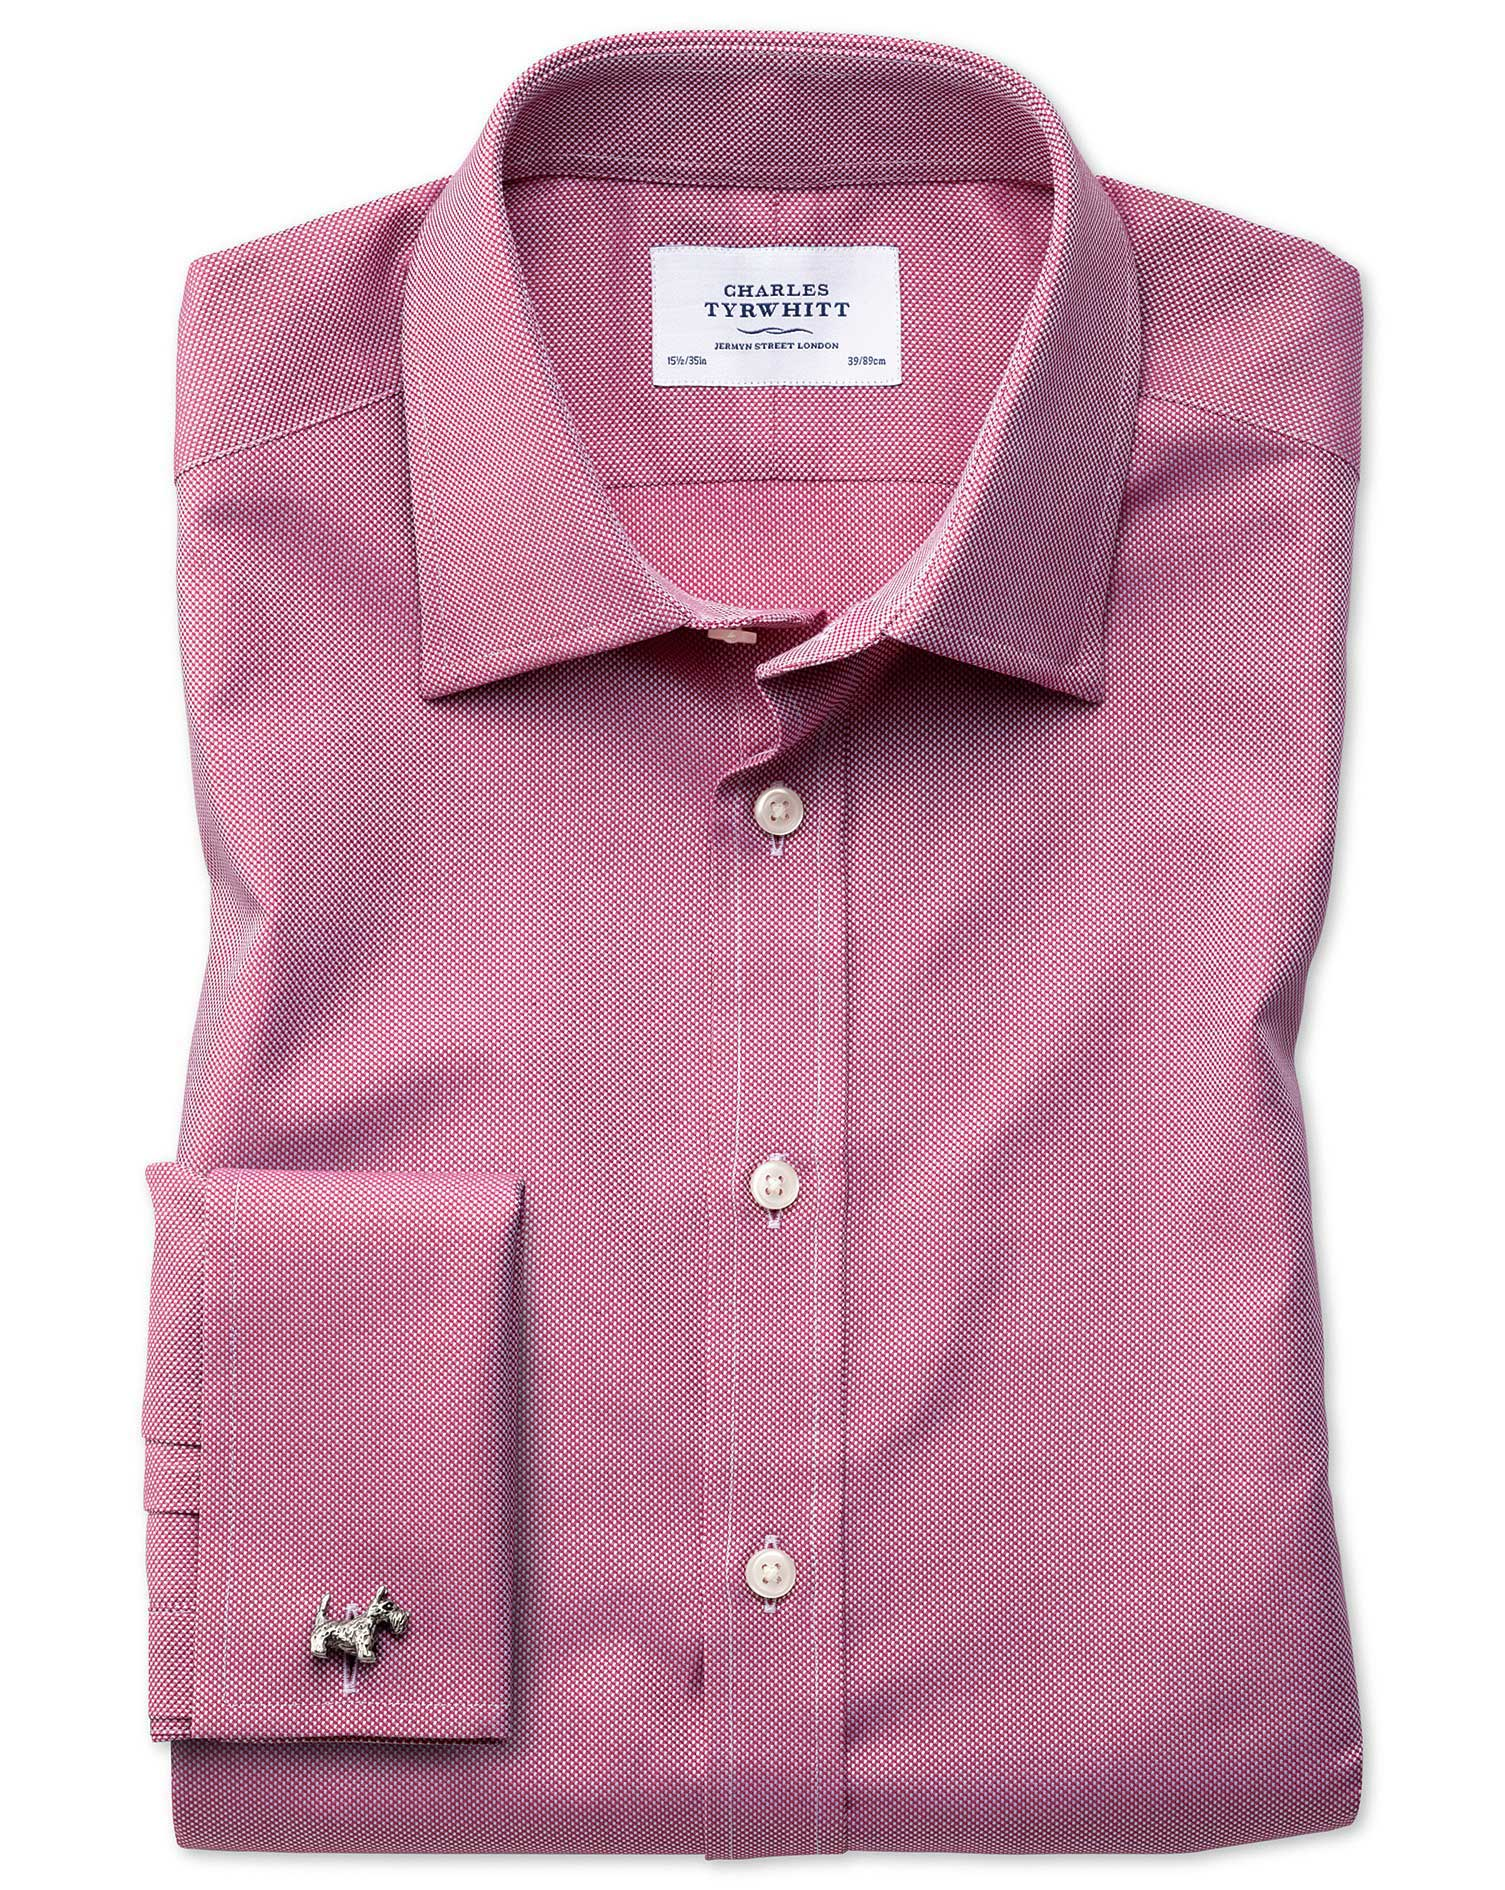 Extra Slim Fit Egyptian Cotton Royal Oxford Magenta Formal Shirt Double Cuff Size 15.5/33 by Charles